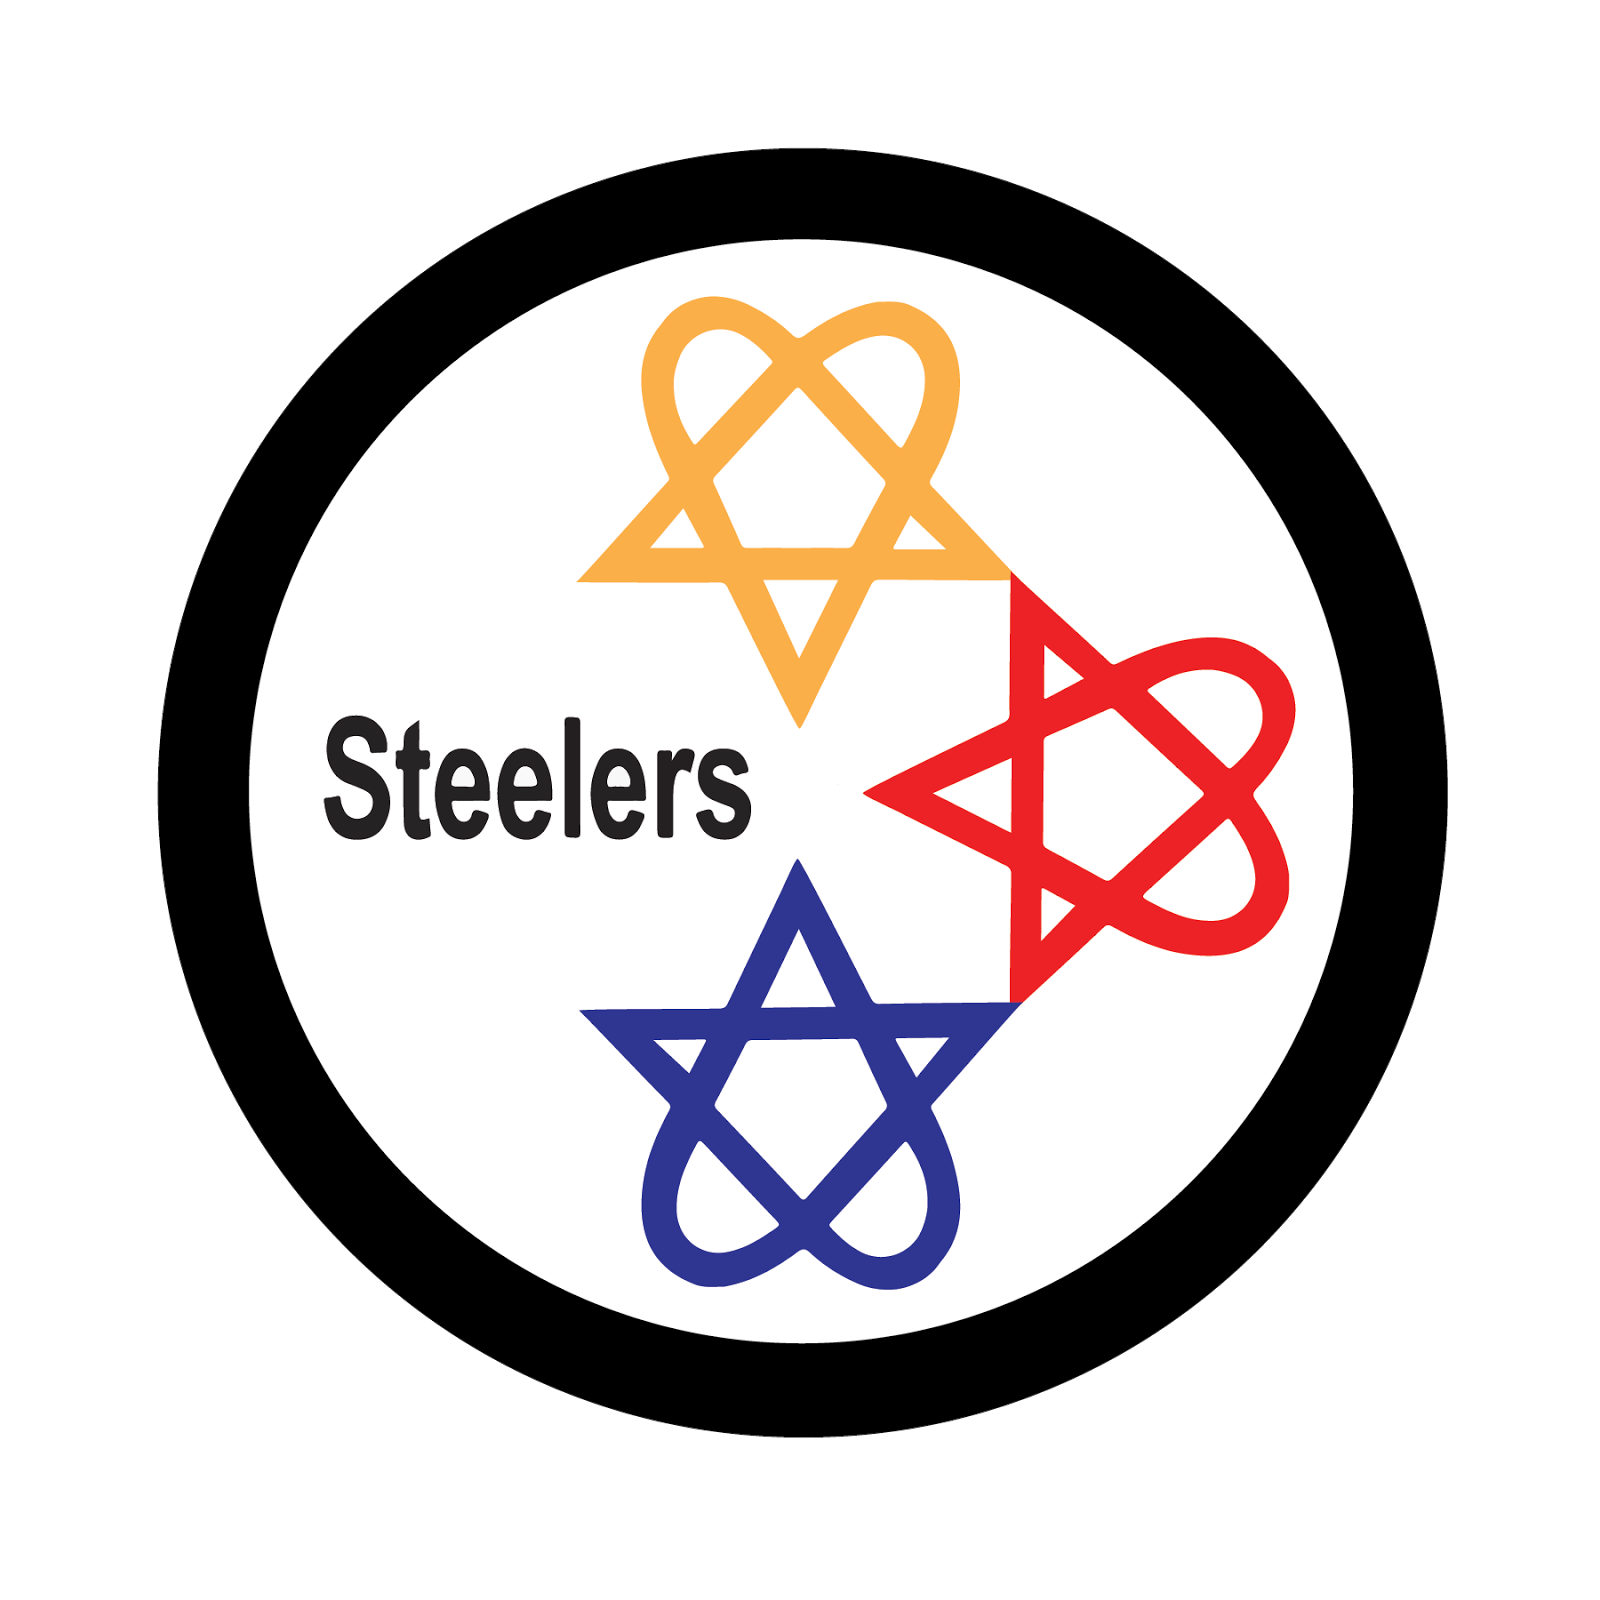 Pittsburgh Steelers, metal, logo, re-imagined